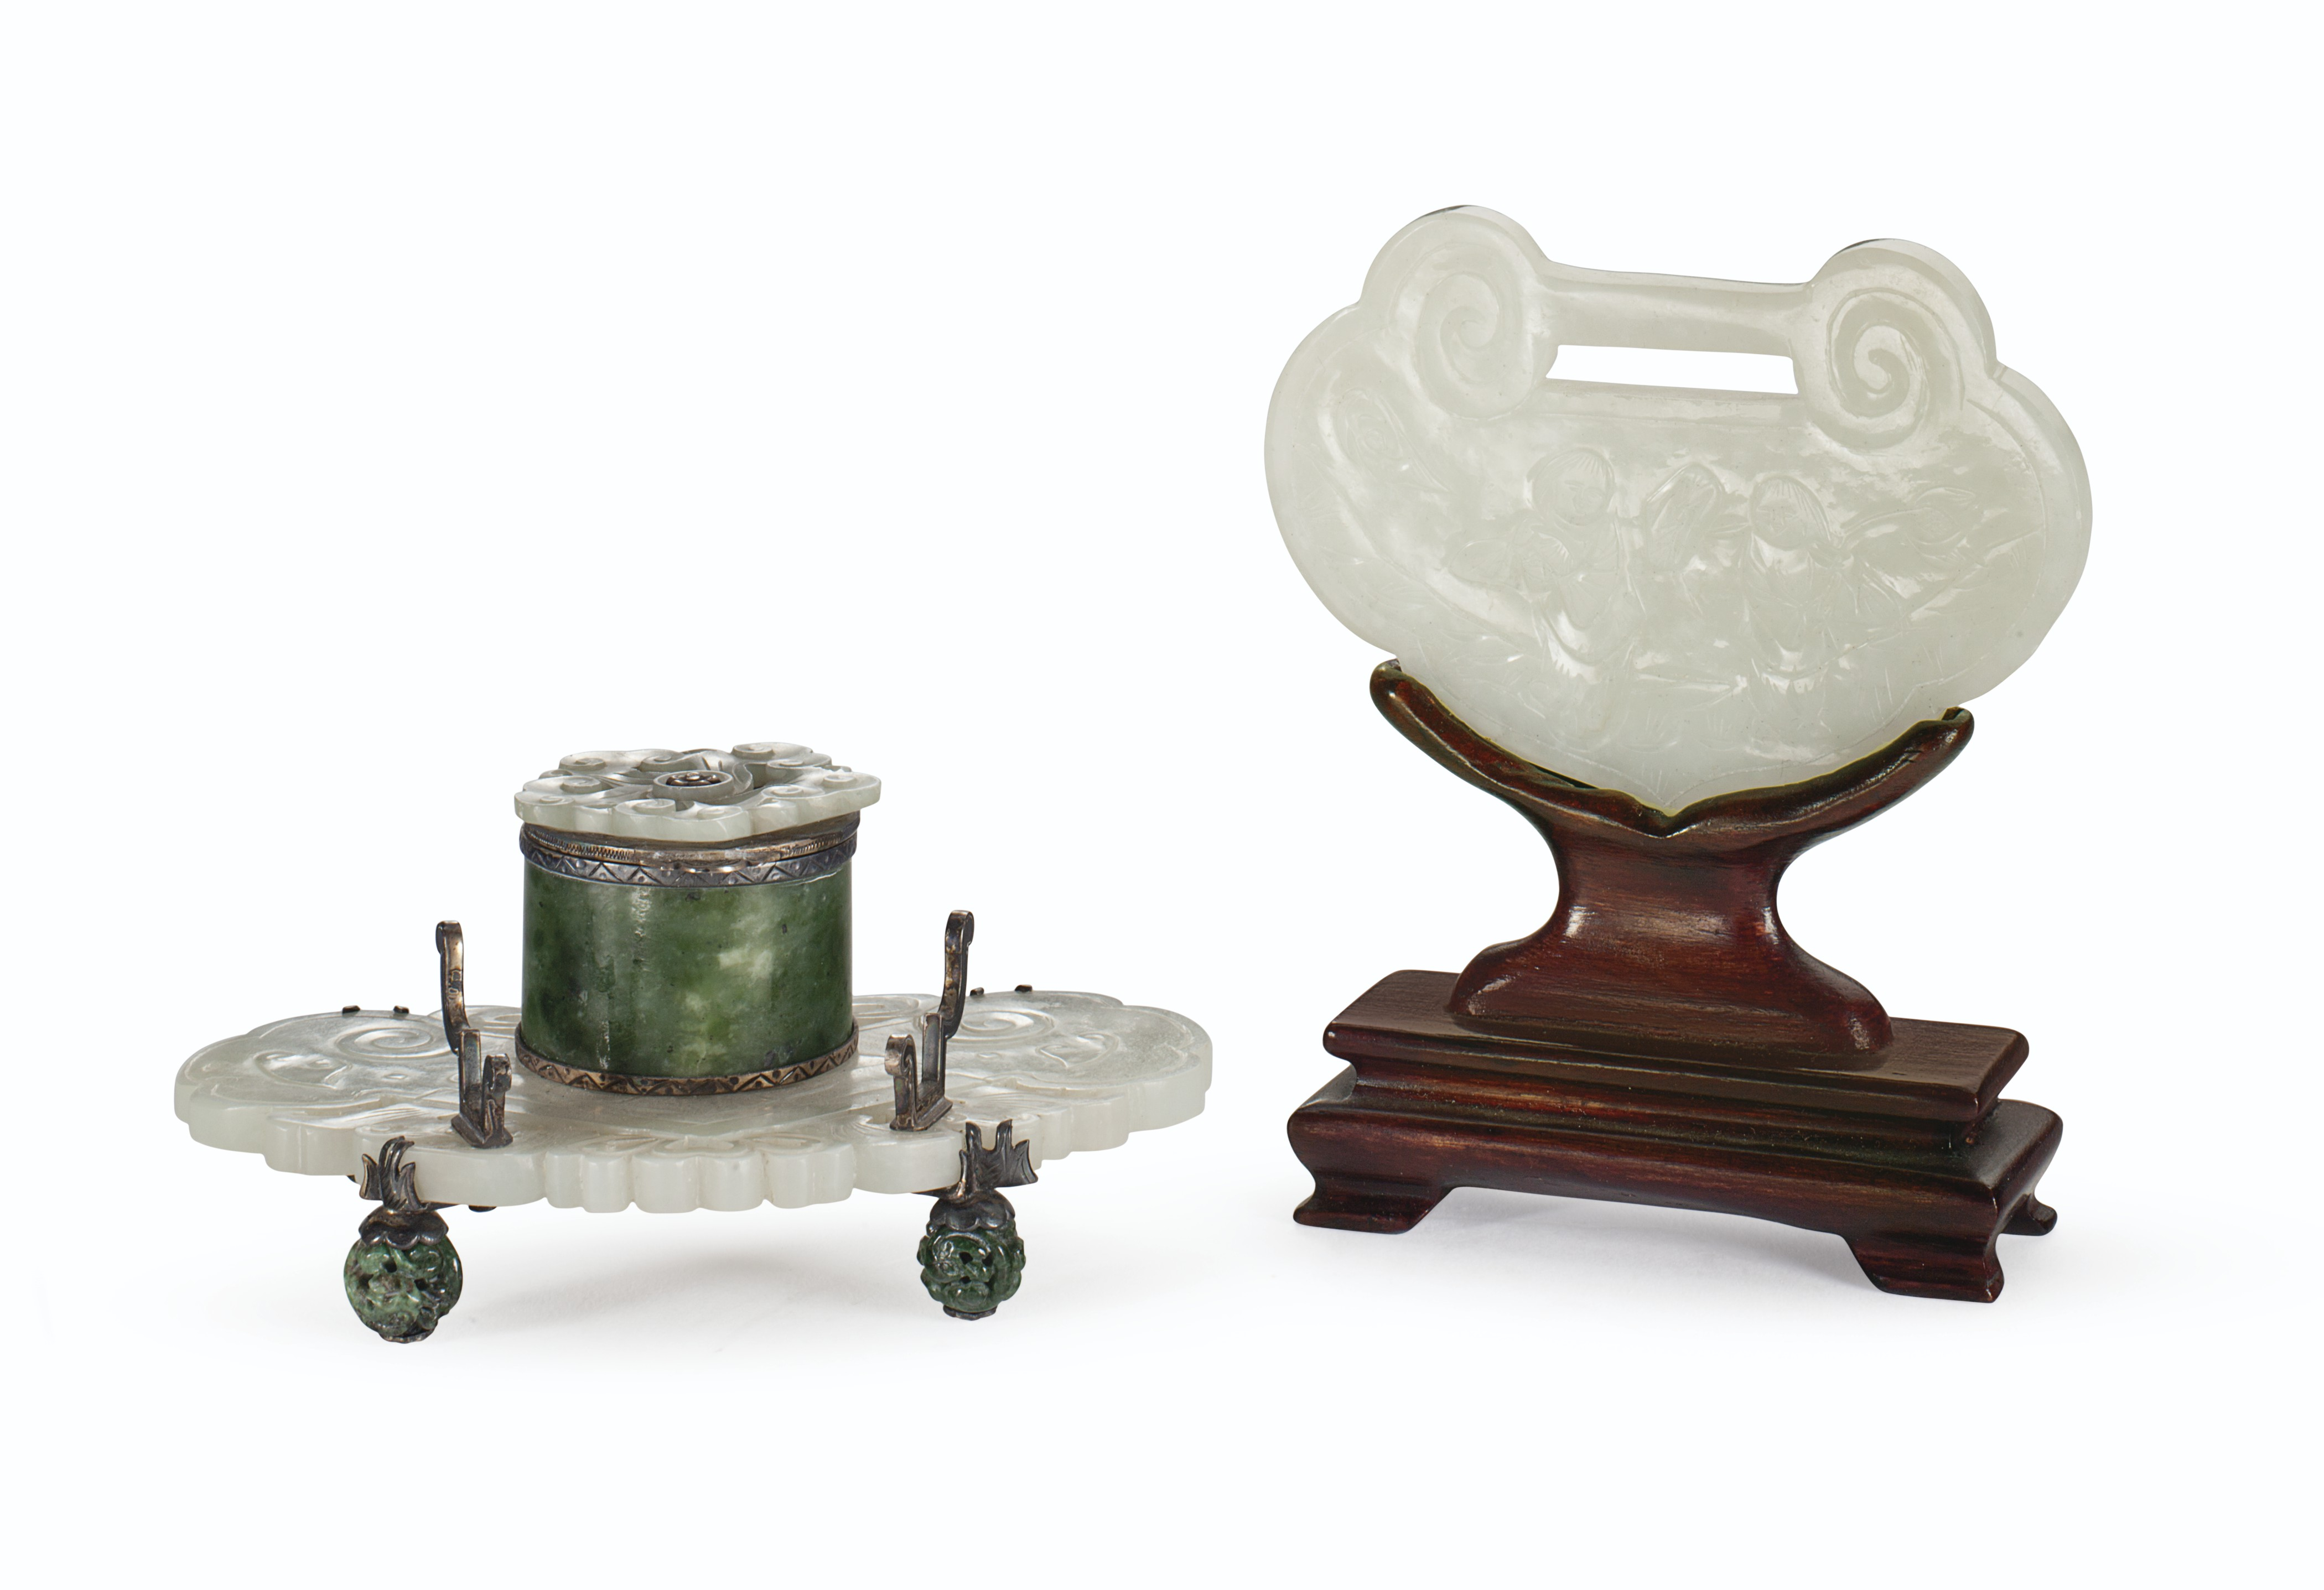 AN EDWARD I FARMER SILVER-GILT MOUNTED CHINESE PALE WHITISH-GREEN AND MOTTLED SPINACH JADE INKWELL, AND A PALE WHITISH-GREEN JADE PENDANT